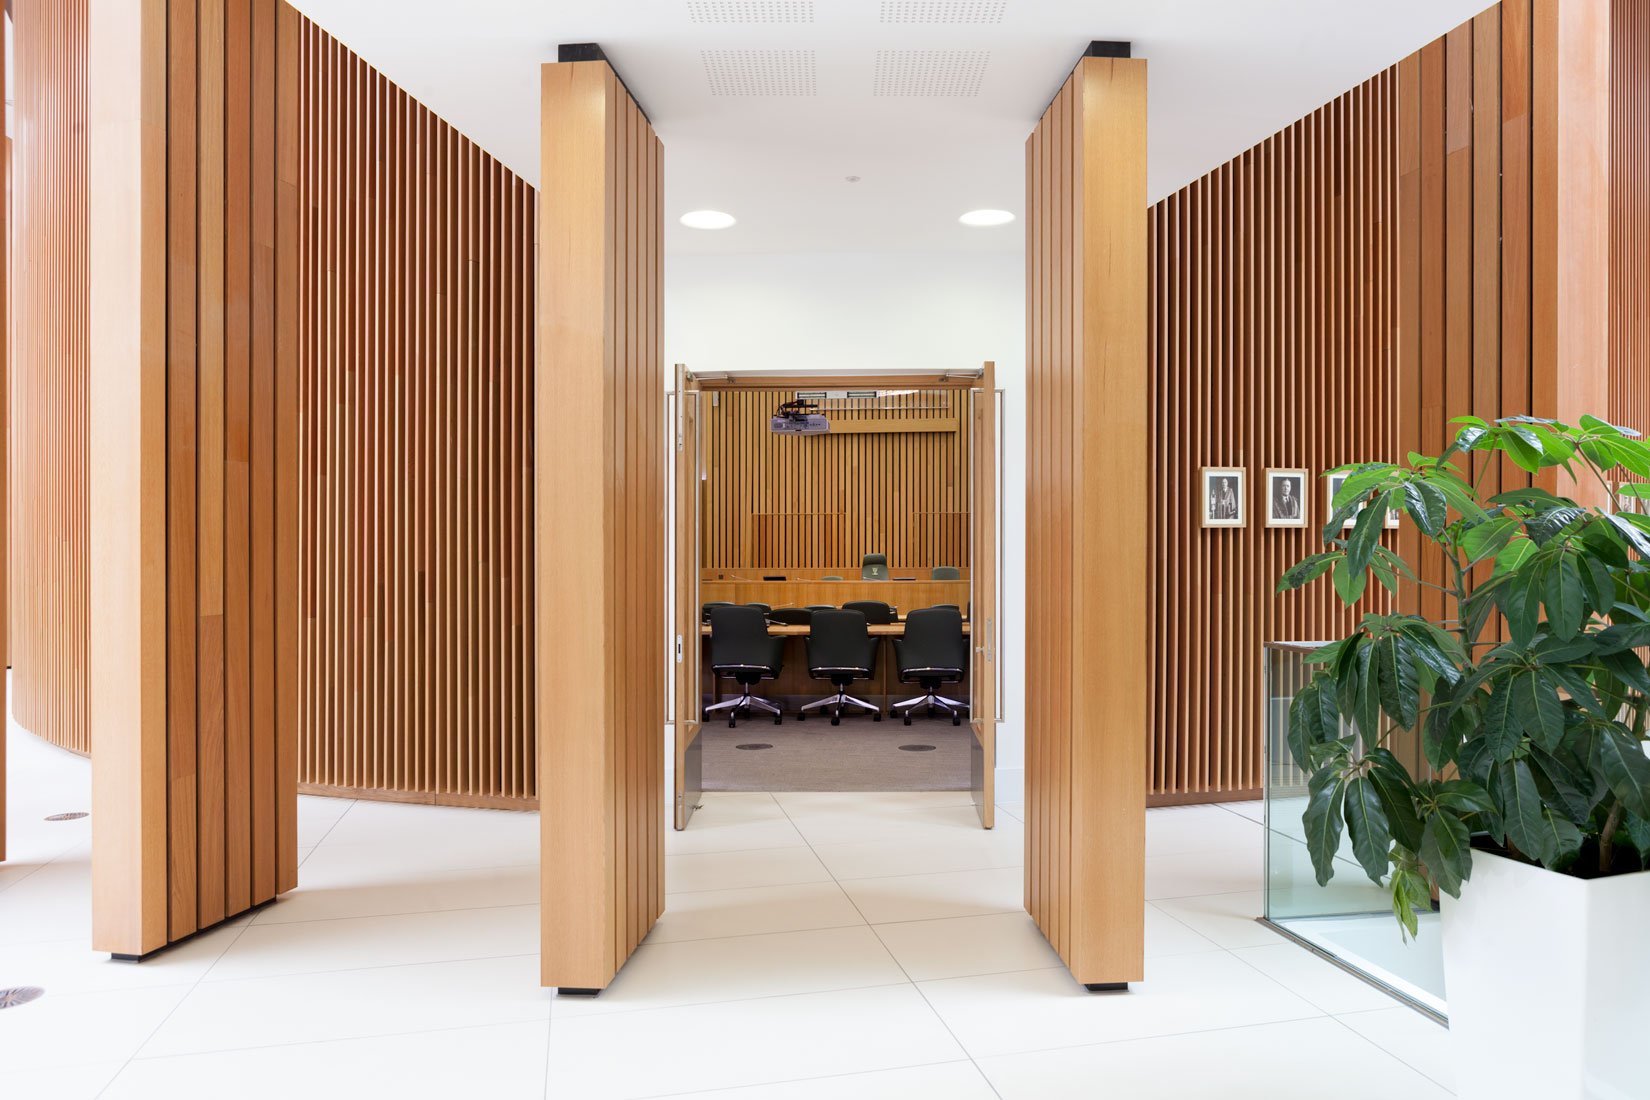 Interior Photography of Derby City Council Reception double height space and vertical wooden slats floor to ceiling  by interior photographer Matthew Jones